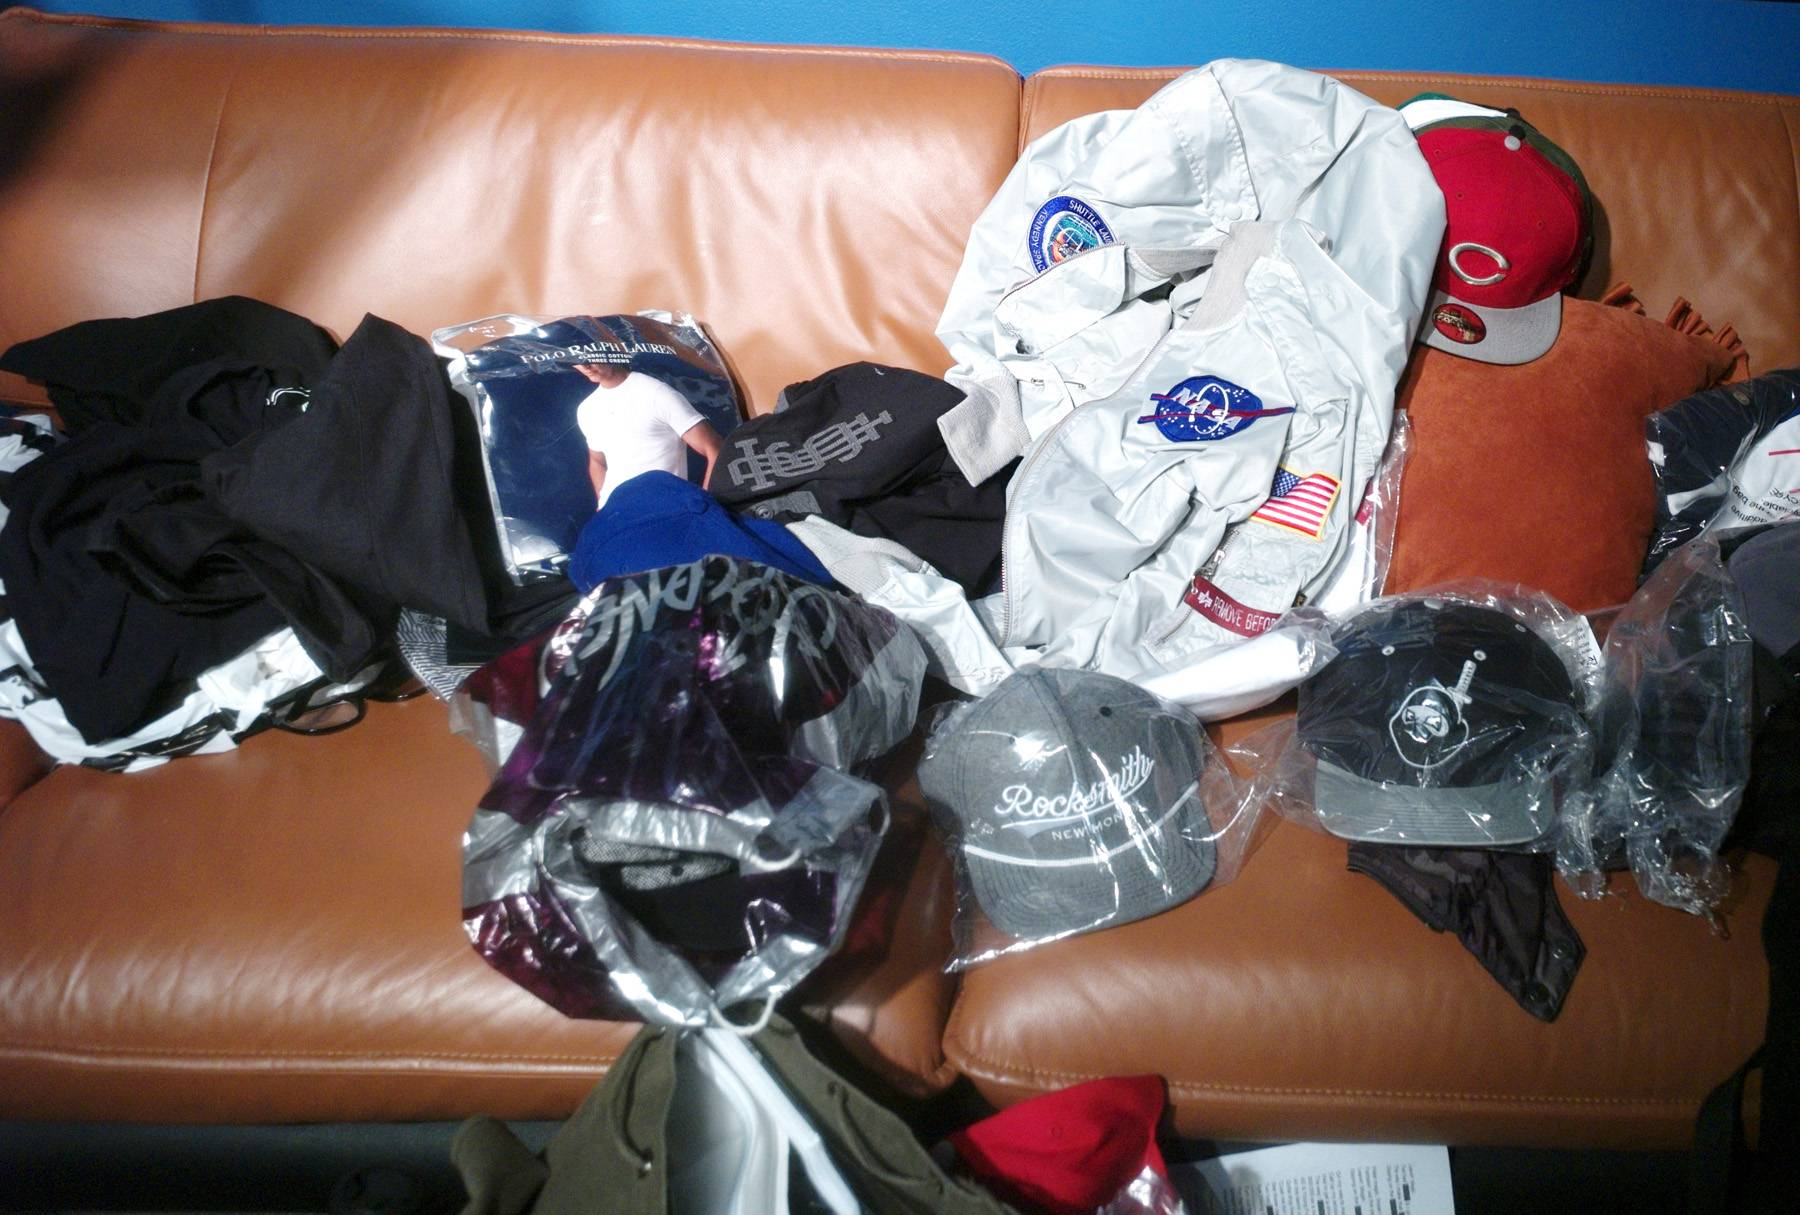 Laid Out - Clothing for Future is laid out in the green room at 106 & Park, April 20, 2012. (Photo: John Ricard / BET)